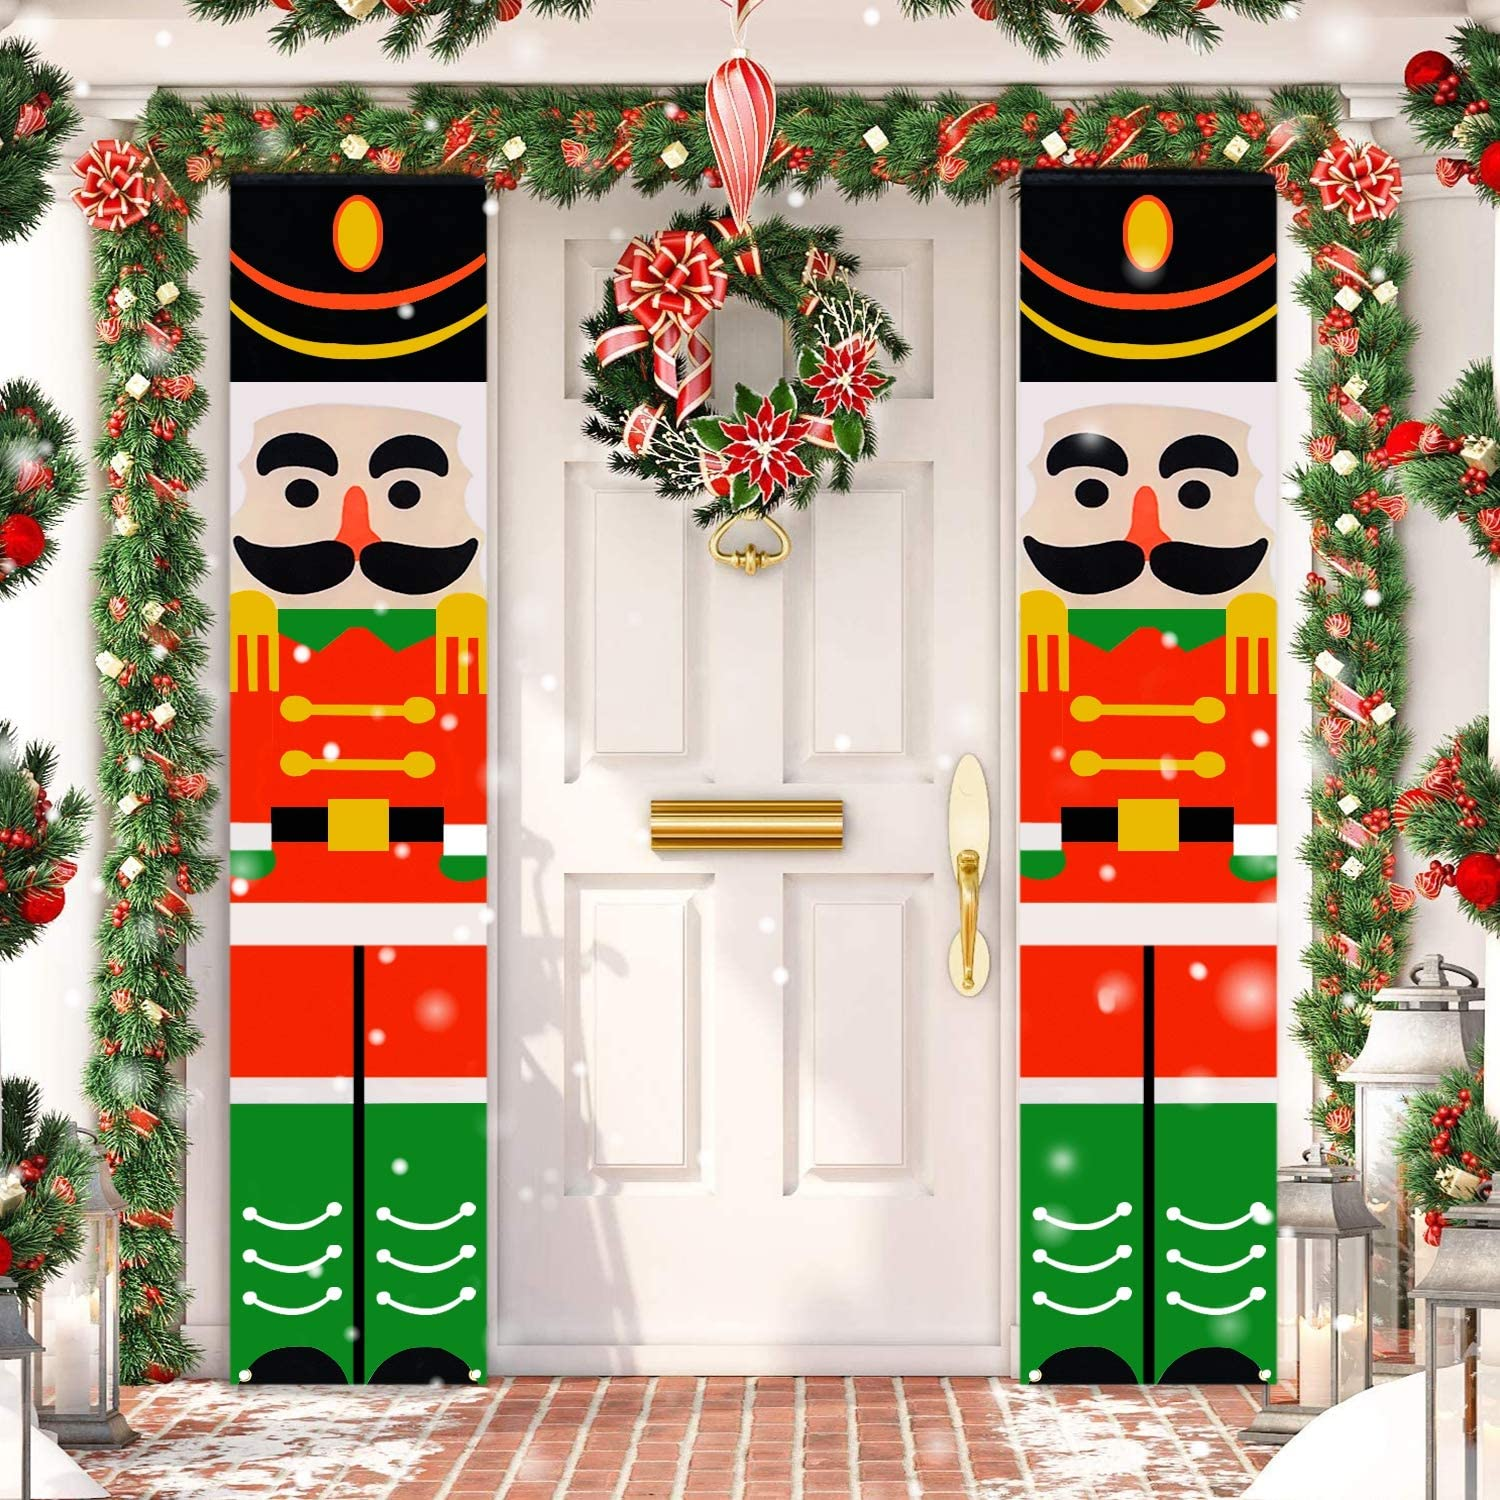 TOPLEE 2 PCS Christmas Nutcrackers Porch Banner 14 x 74 Inch Front Door Signs Xmas Decor Soldier Hanging Banner for Wall Outdoor Indoor Home Party Yard Holiday Christmas Decorations